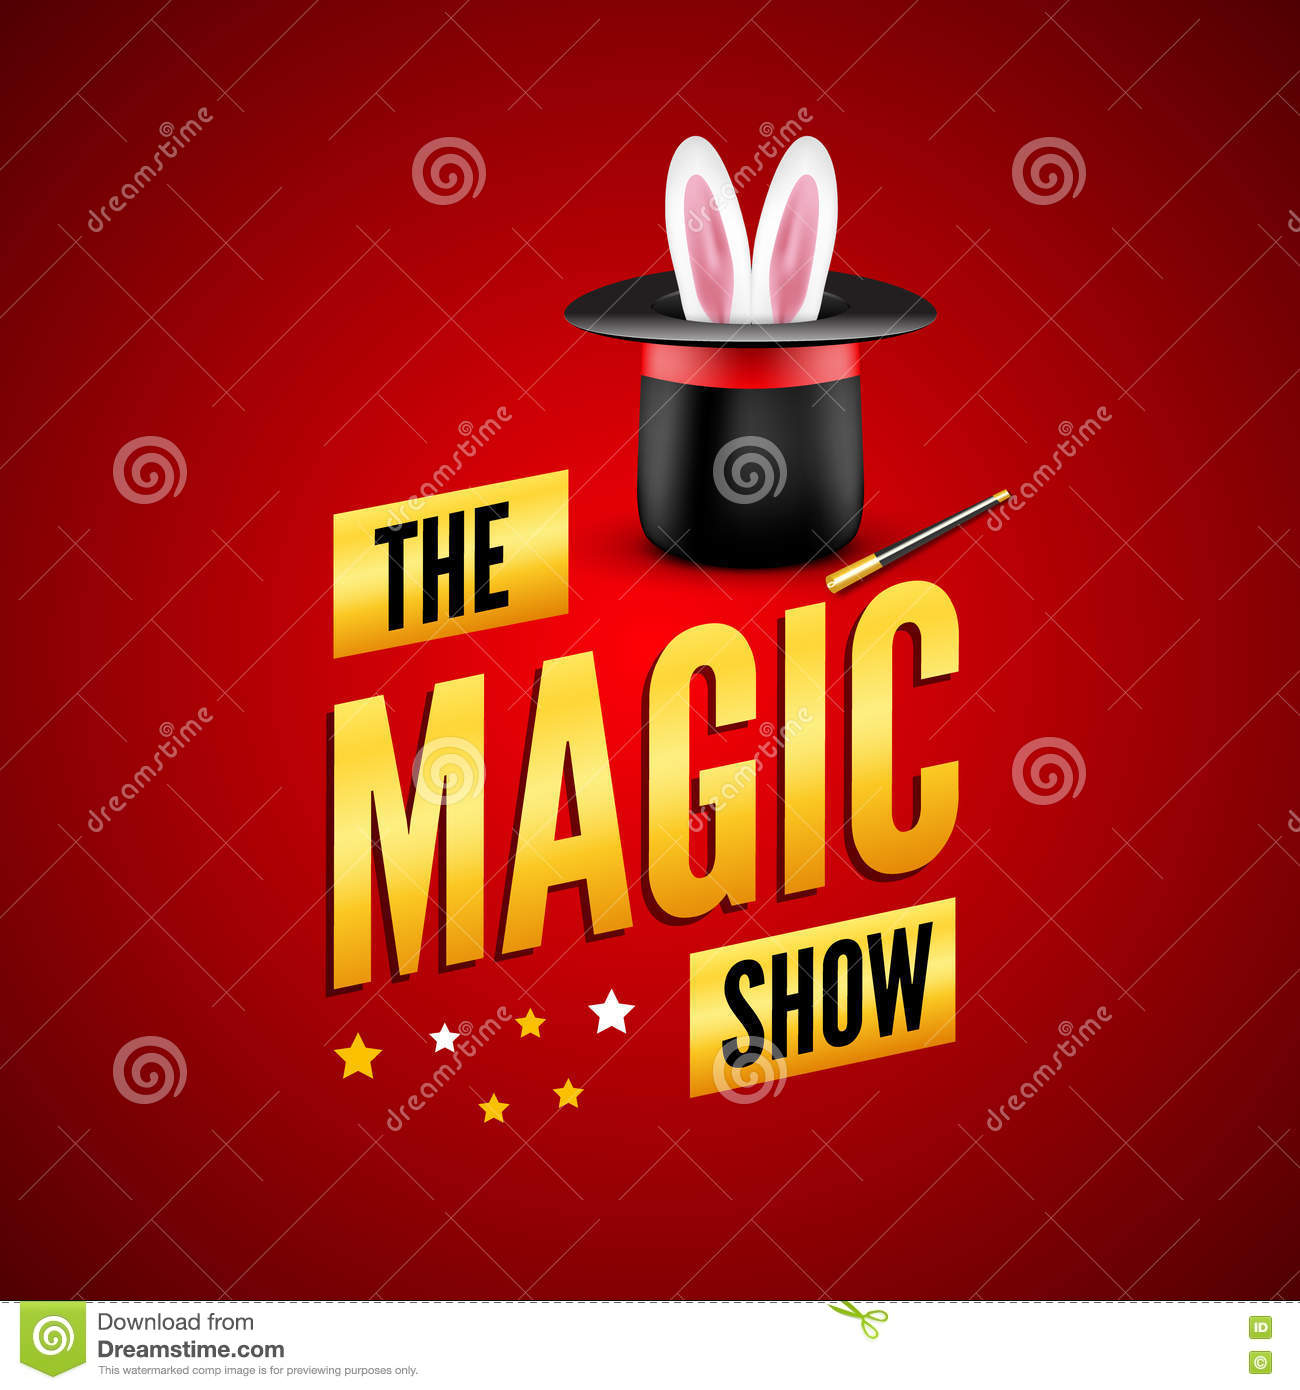 Magic poster design template. Magician logo concept with hat, rabbit and wand